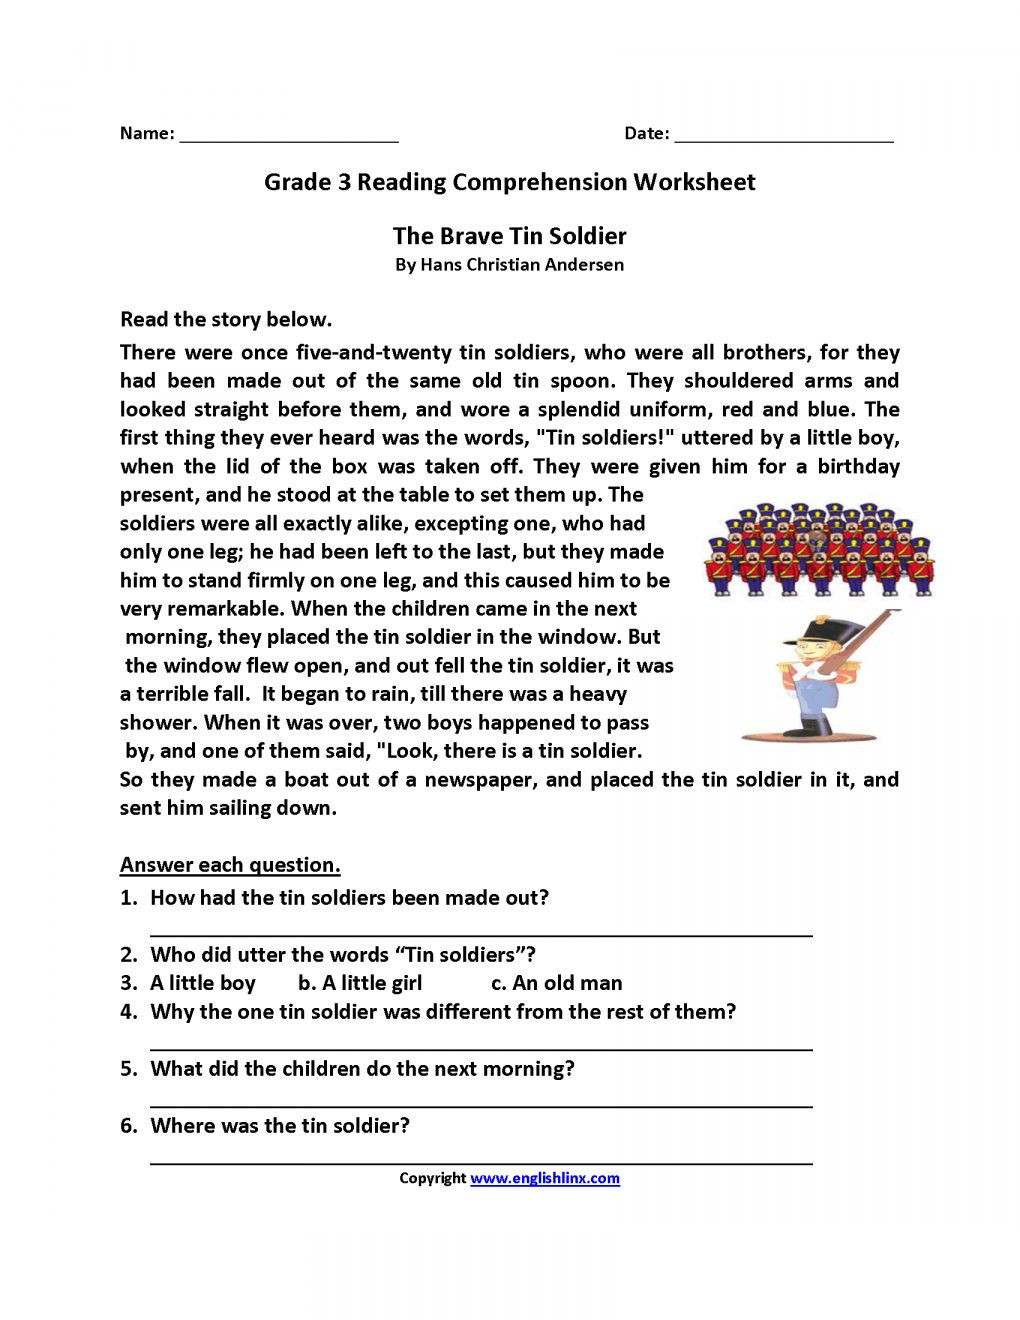 Cold War Reading Comprehension Worksheet 7 3rd Grade Reading Prehension Worksheets with Questions